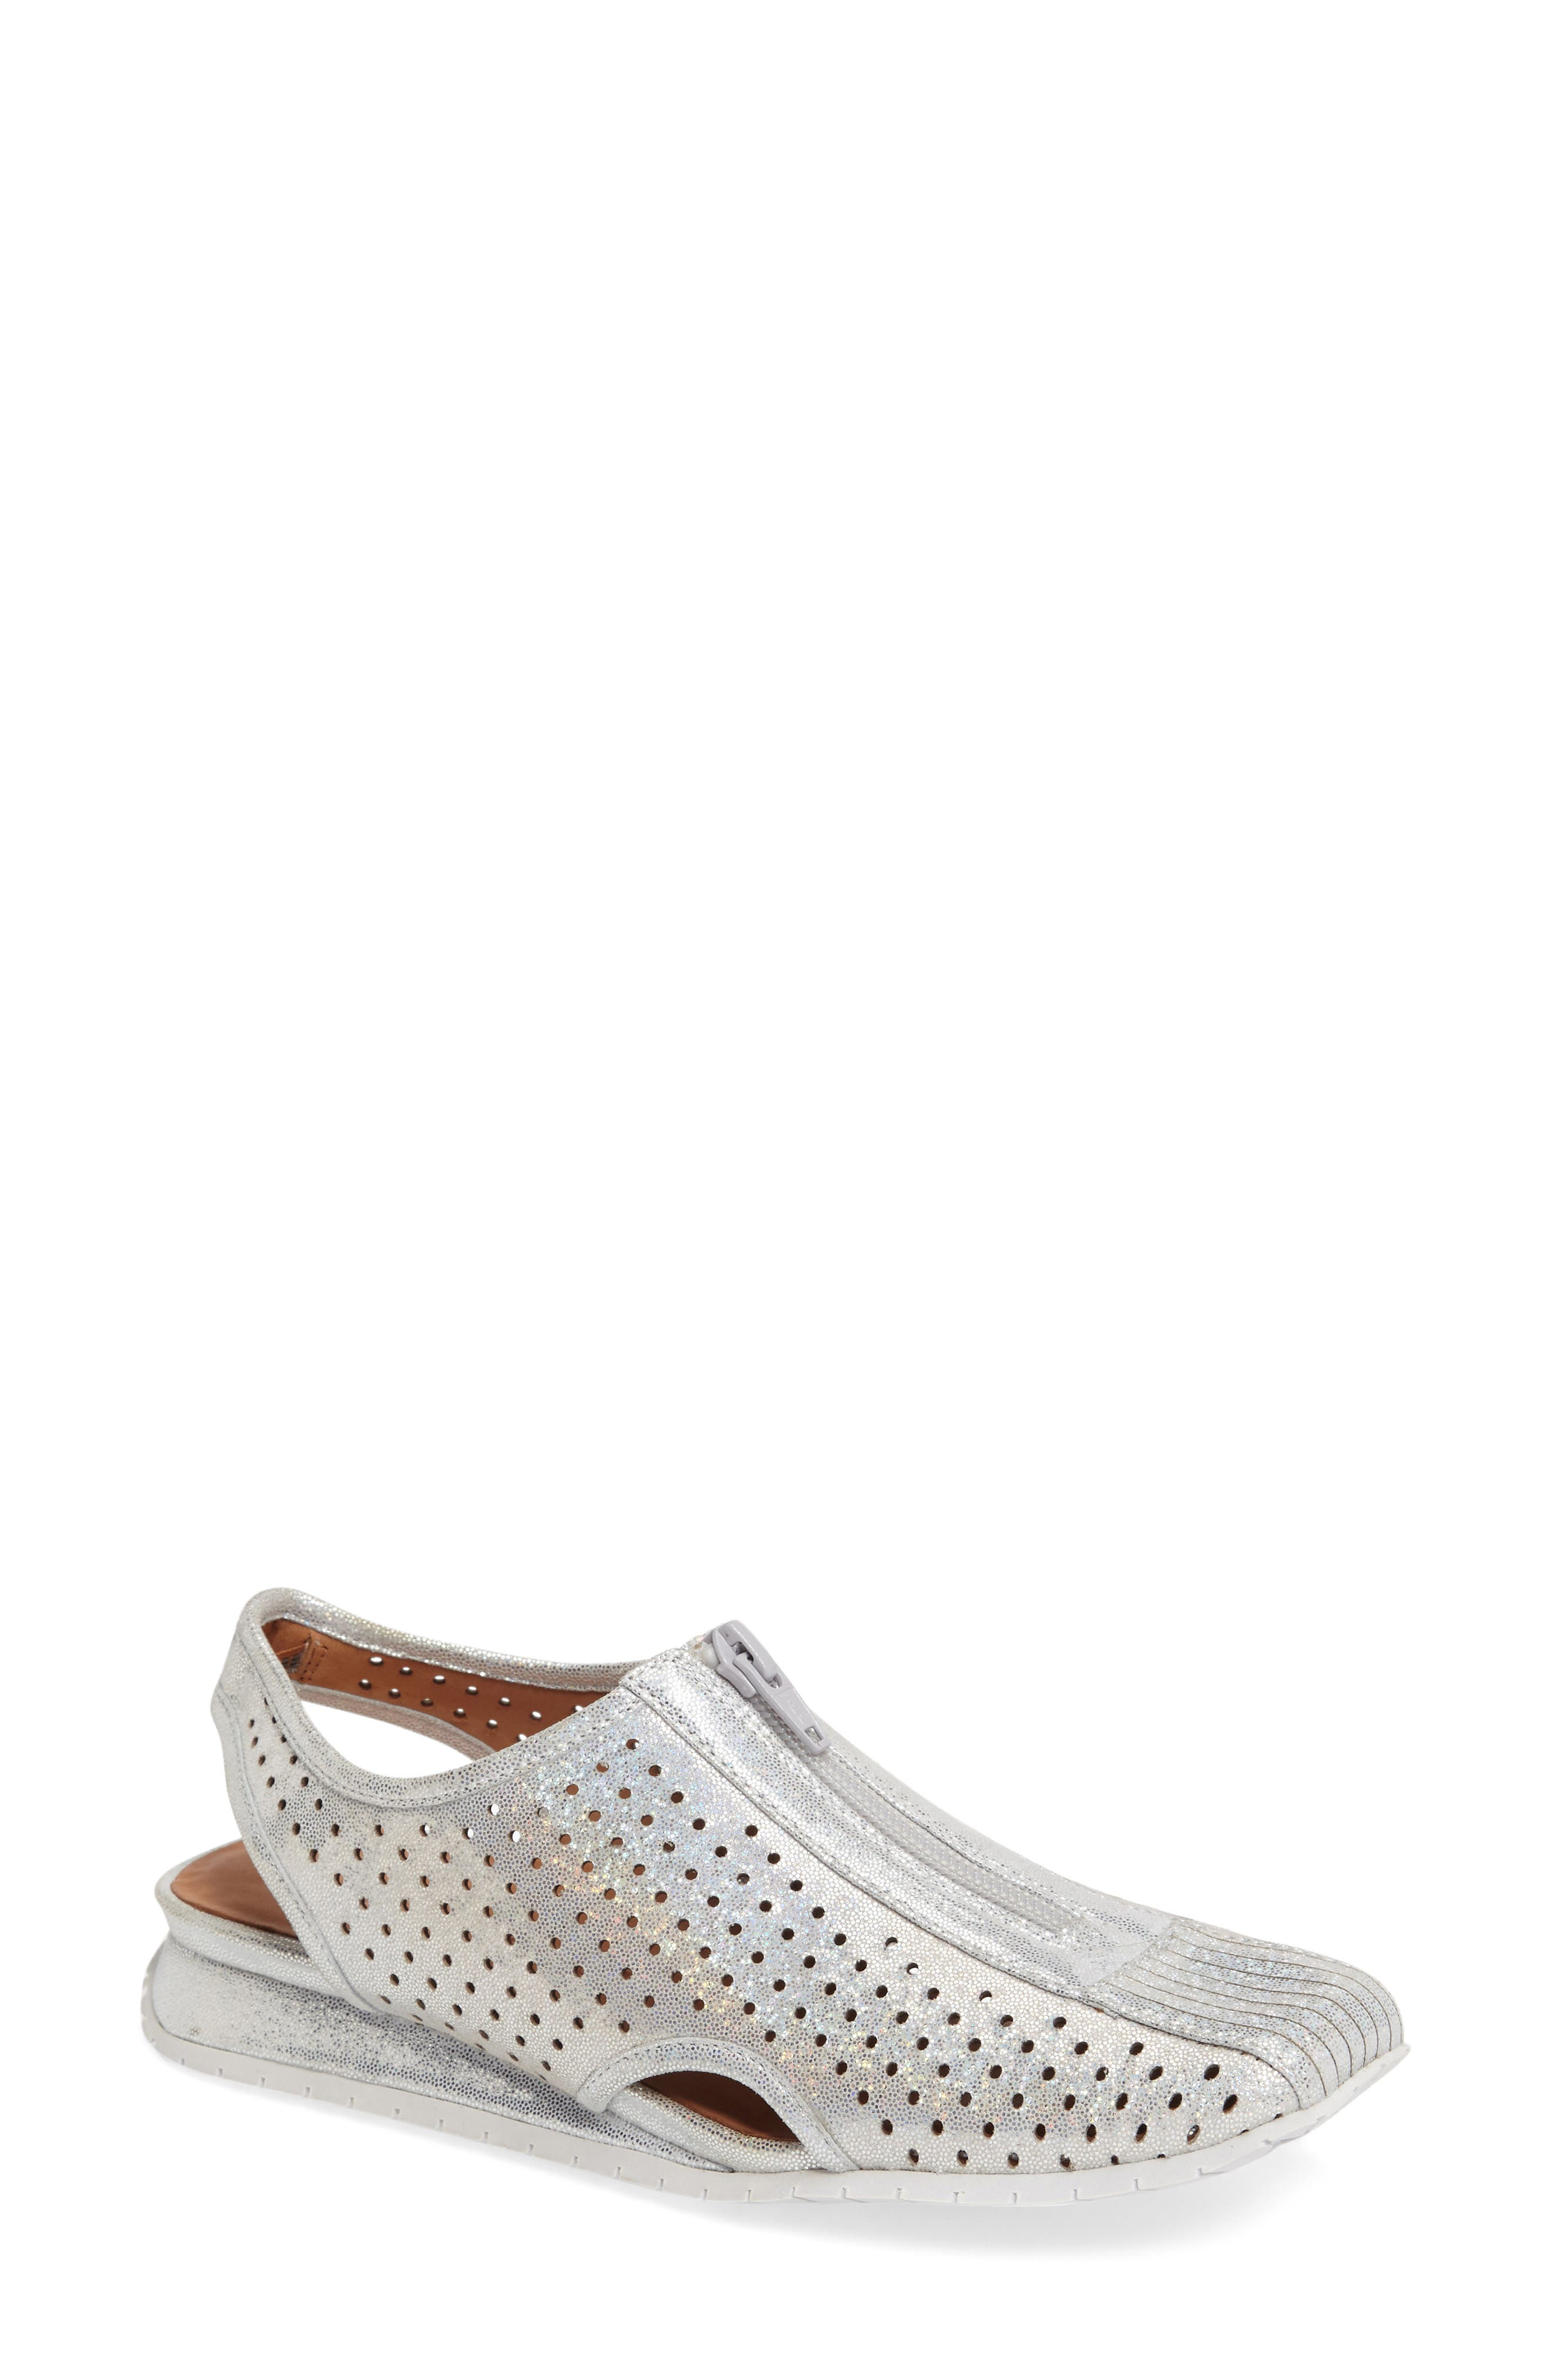 L'Amour des Pieds Trintino Perforated Slingback Flat (Women)